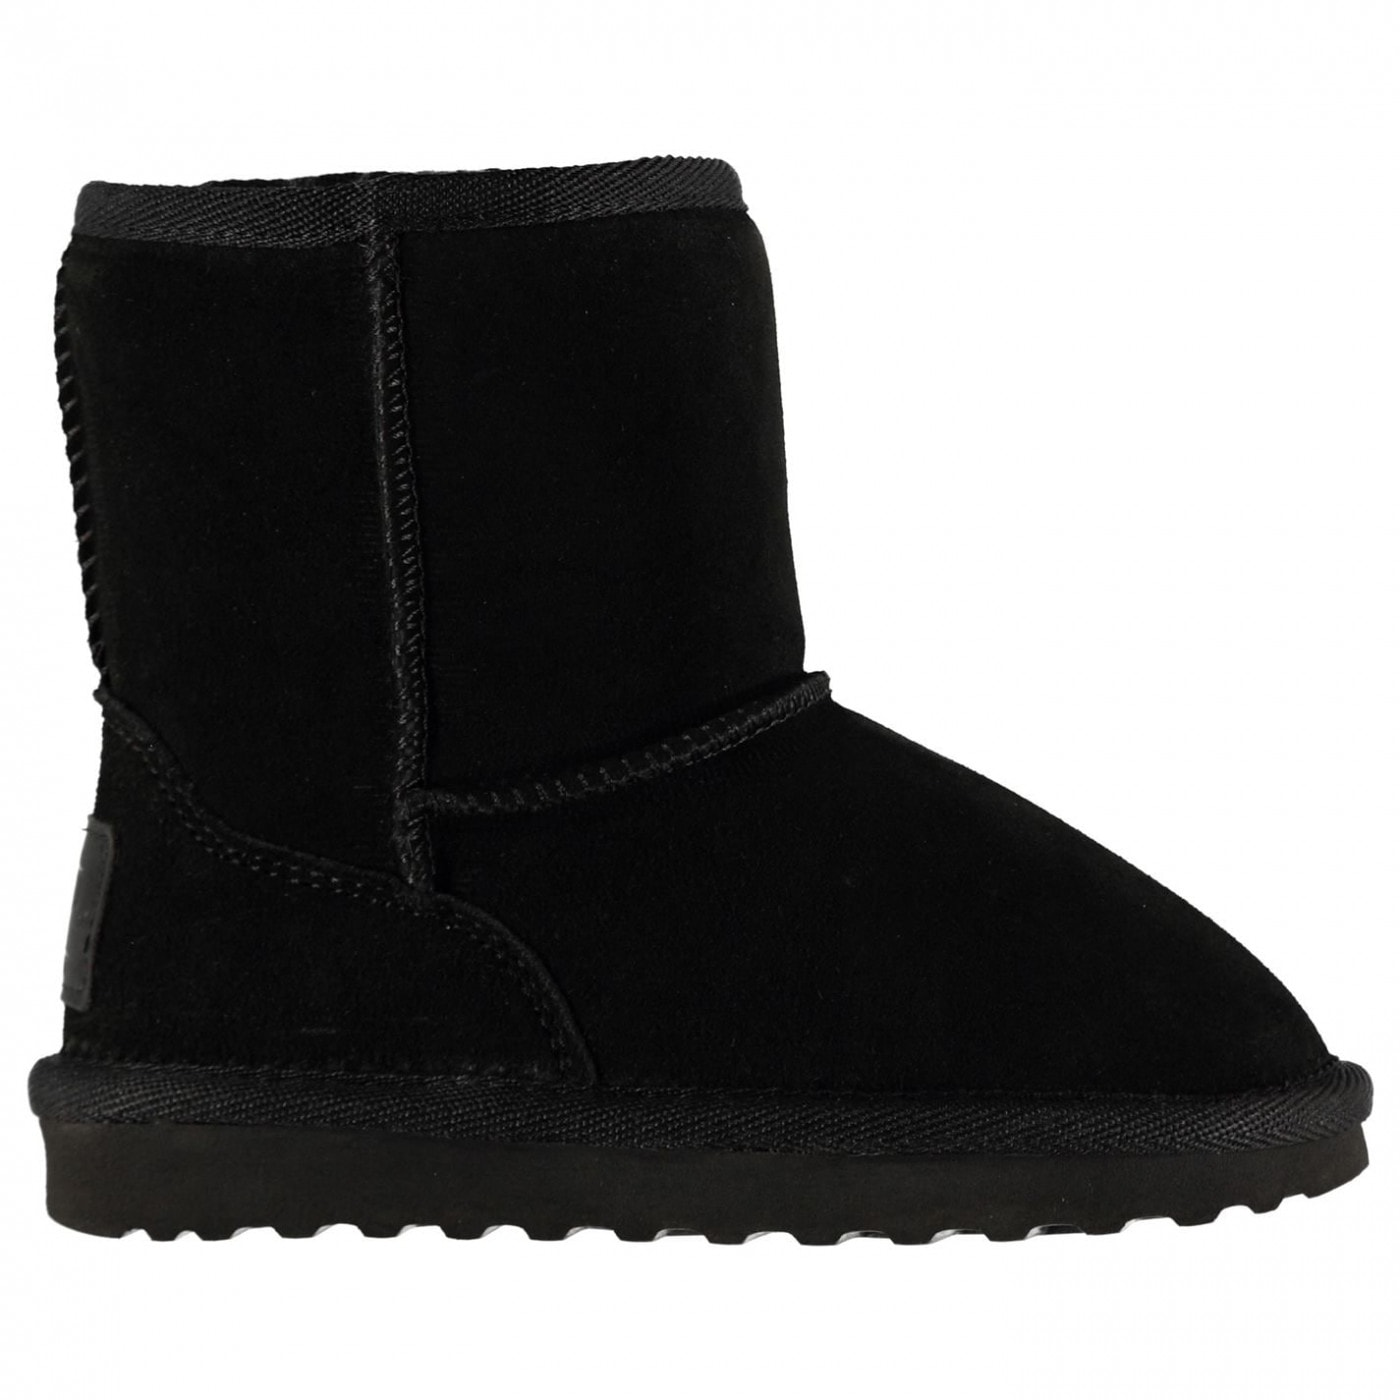 Girls's snow boots SoulCal Selby